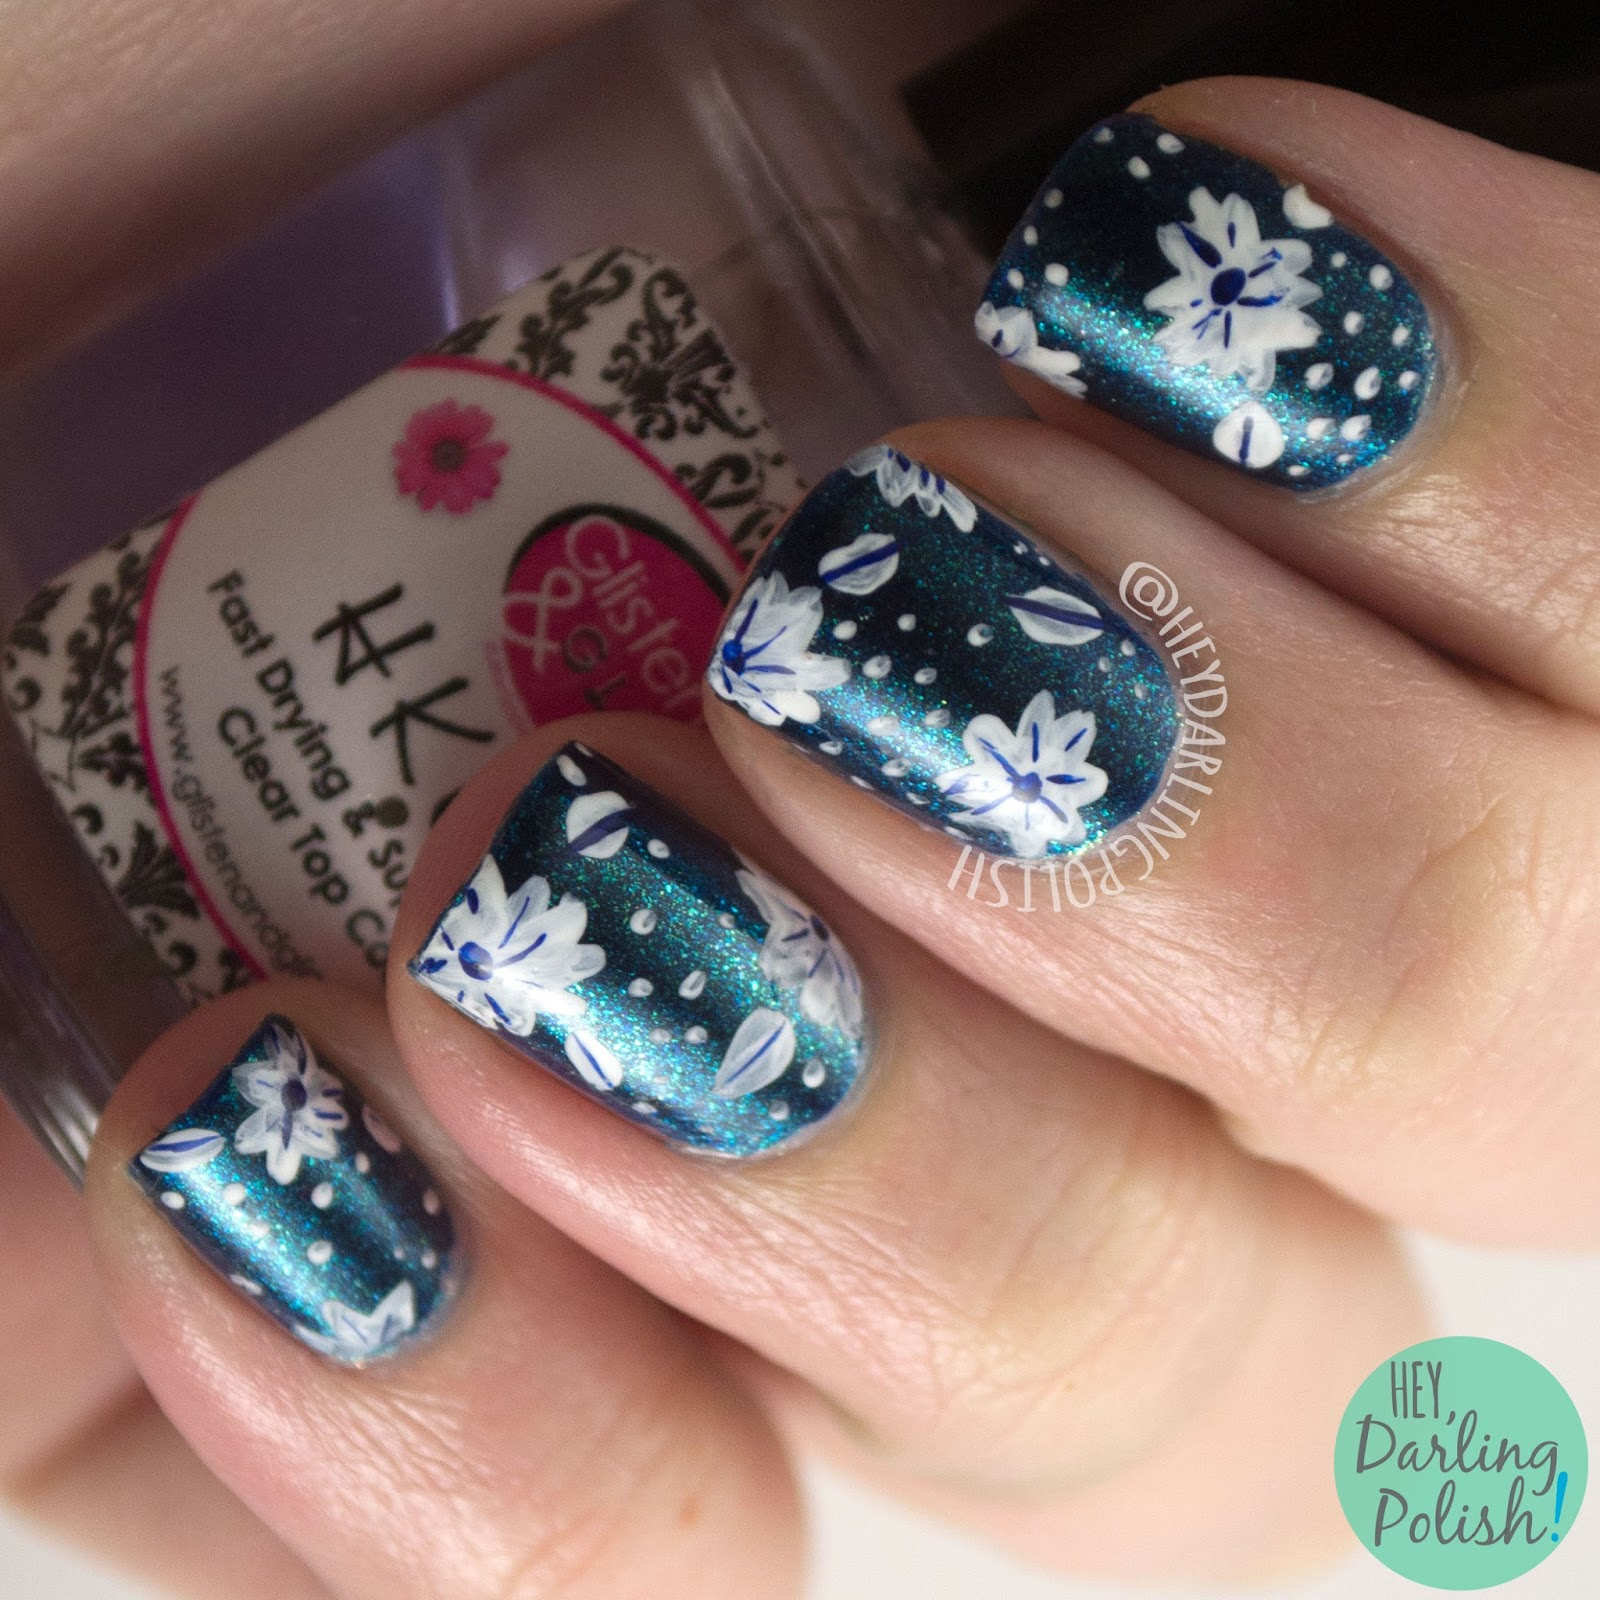 nails, nail art, nail polish, floral, flowers, blue, dark, white, hey darling polish, pattern, zoya